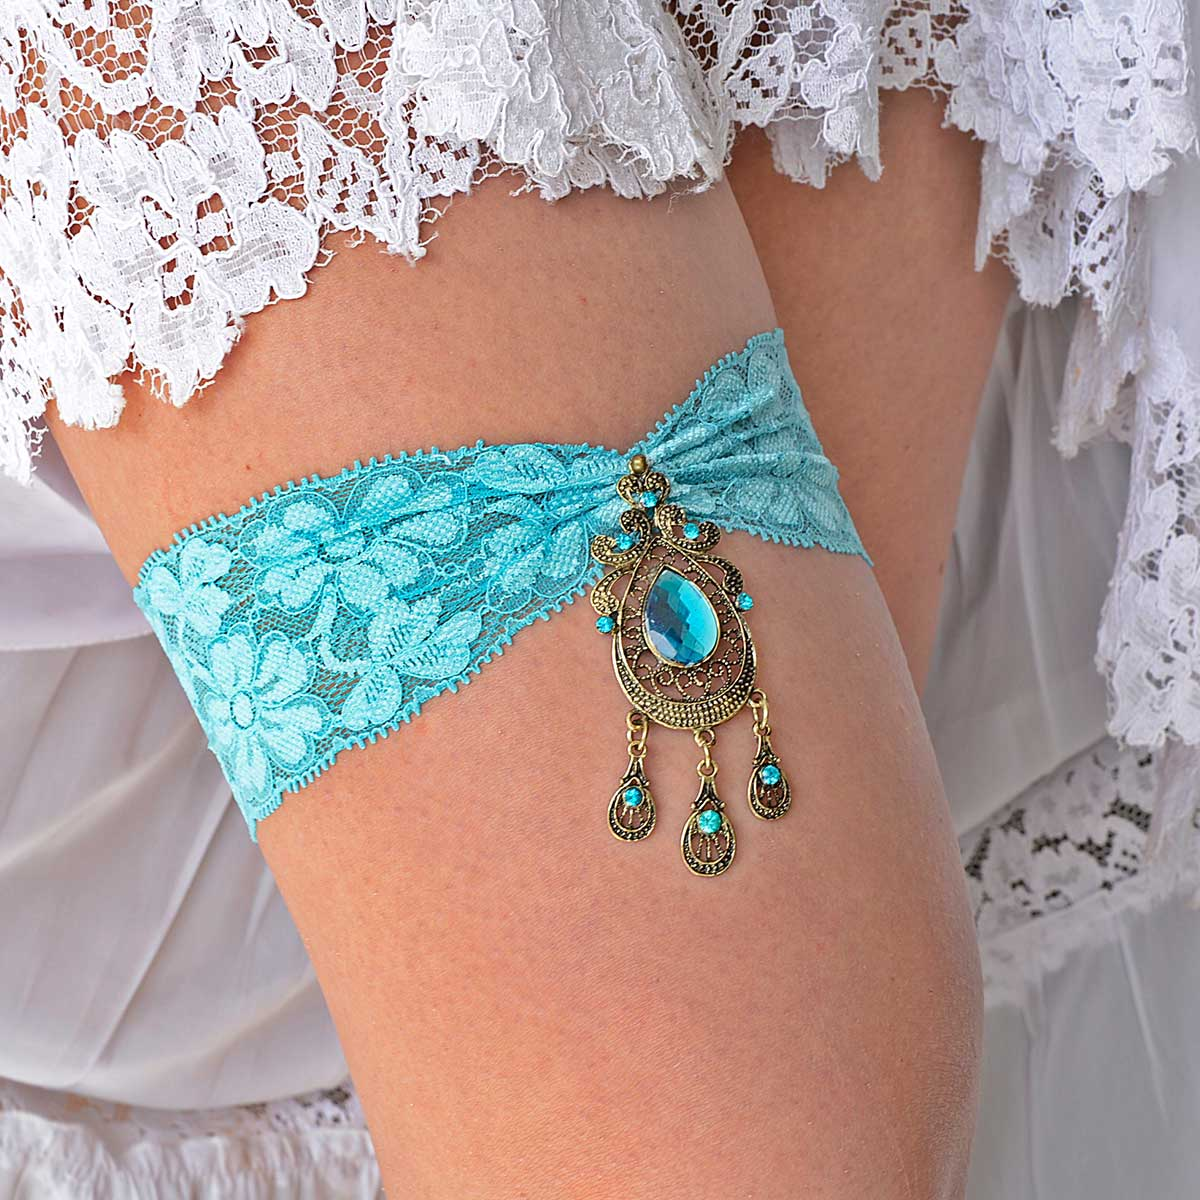 Pale Teal Blue Bridal Garter Set With Antique Gold Rhinestone - Wedding Garter - SuzannaM Designs